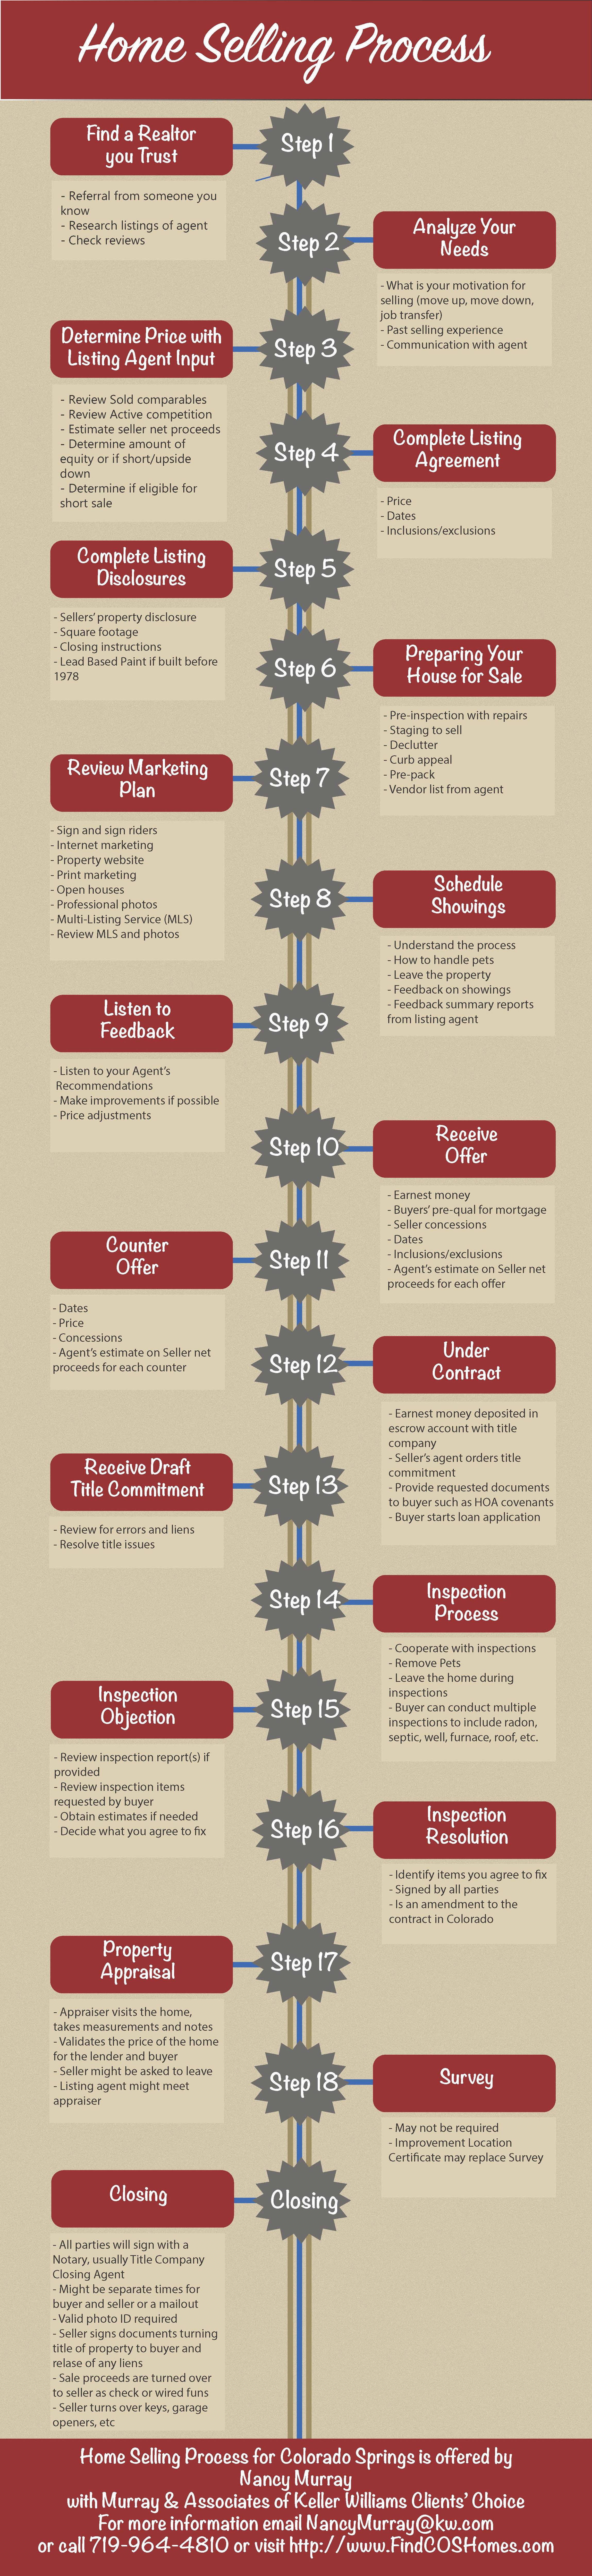 Home Selling Process in Colorado Springs